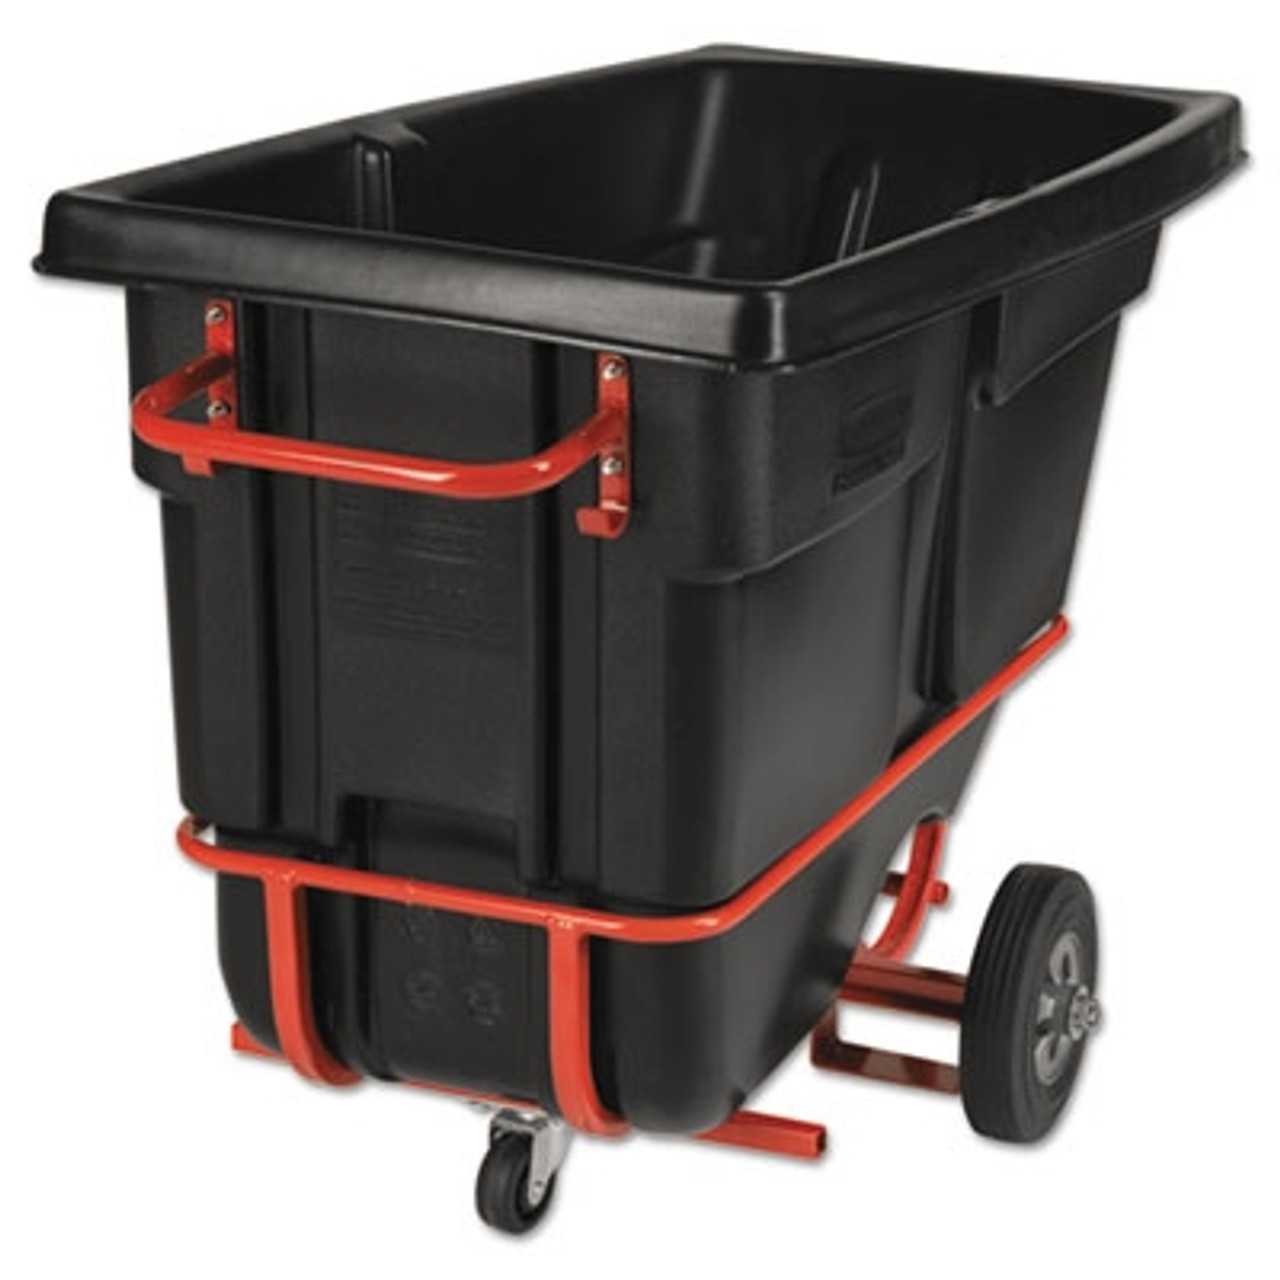 Rubbermaid Commercial Forkliftable Rotomolded Tilt Truck, 1/2 Cu. Yd, Black, 28 x 60-1/2 x 38-5/8